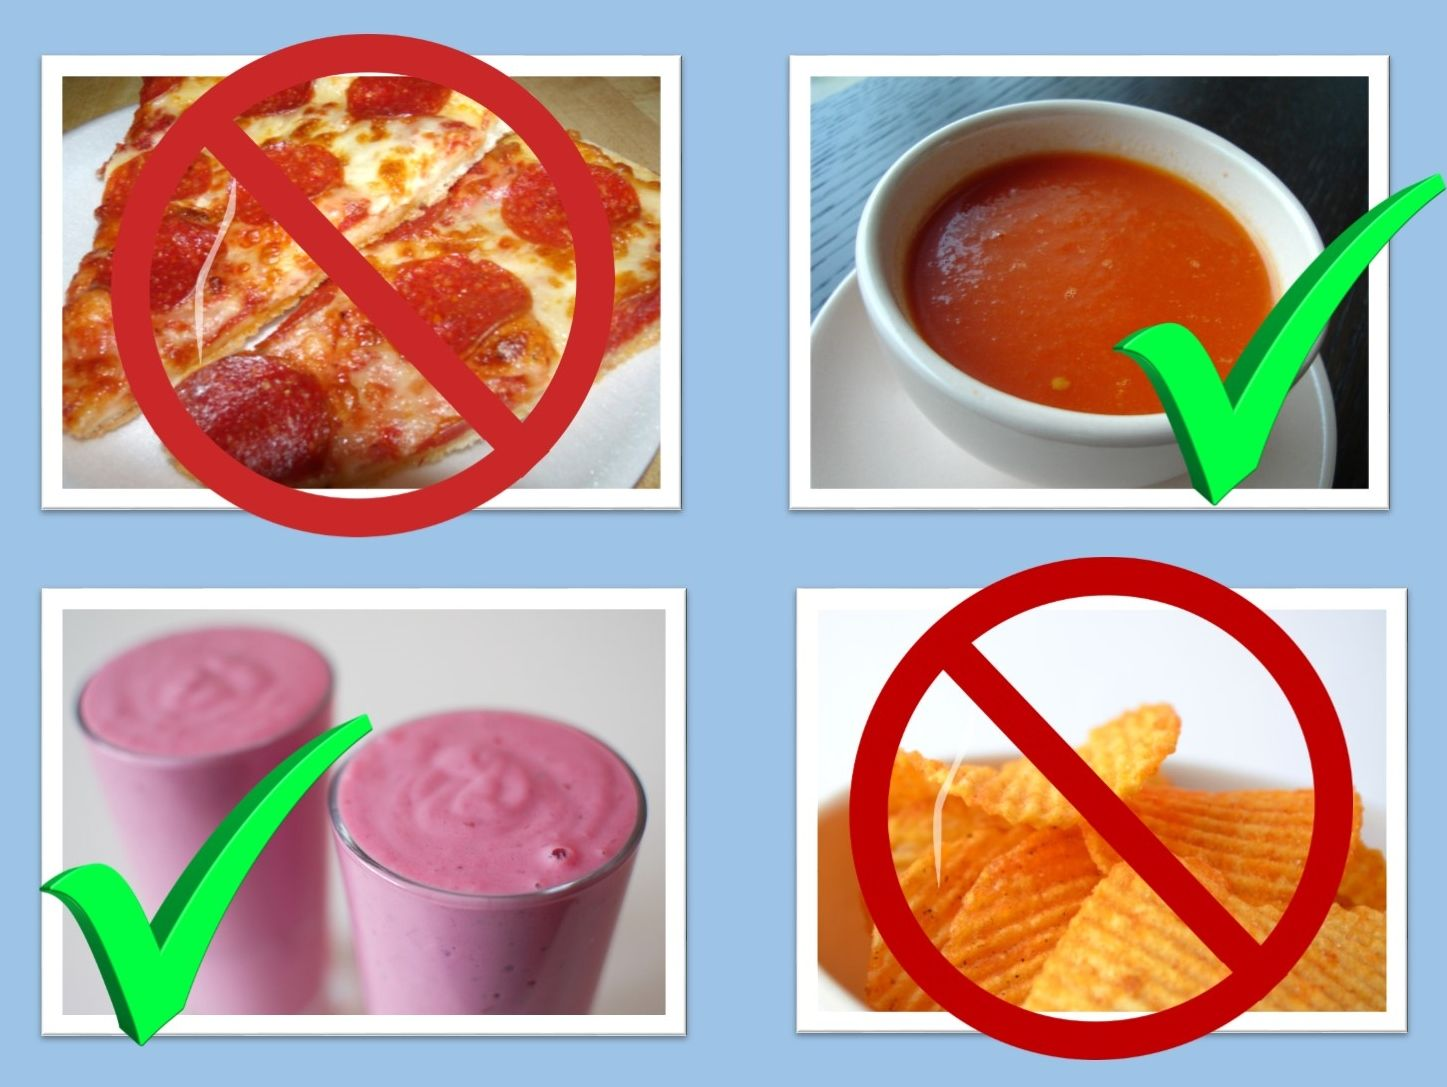 What To Eat After Wisdom Teeth Extraction Wisdom Teeth Food Food After Wisdom Teeth Wisdom Teeth Removal Food